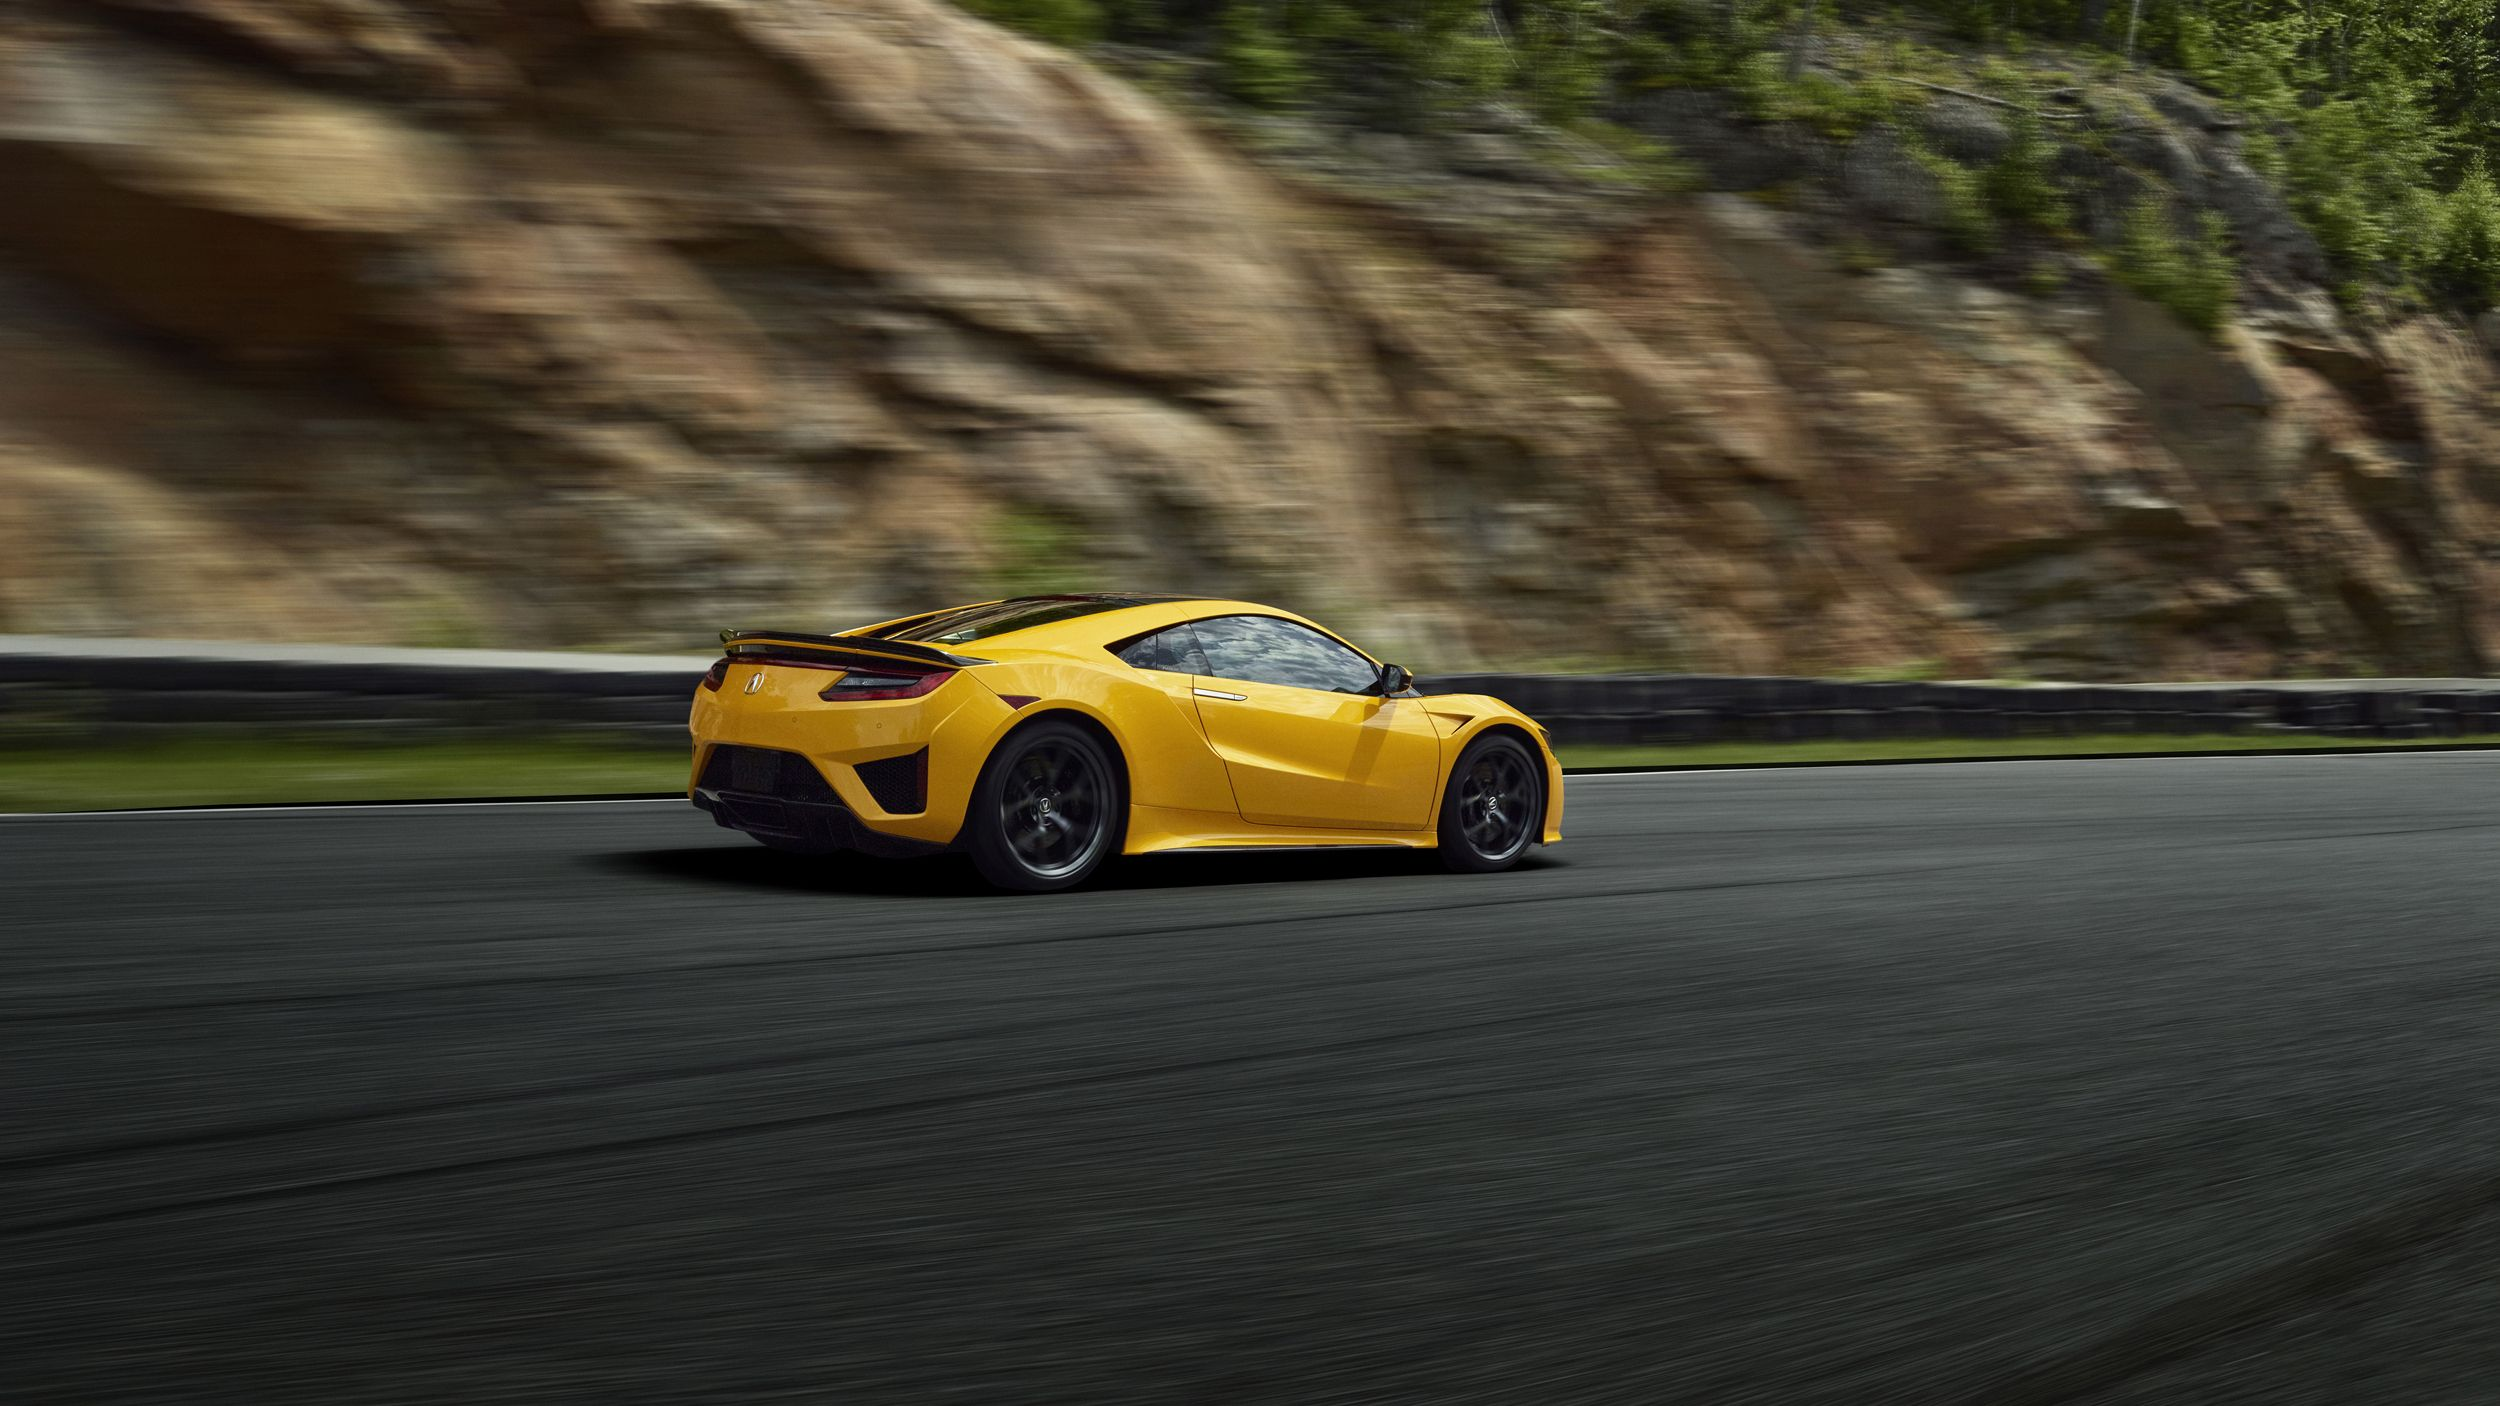 2020 Acura NSX Indy Yellow Pearl Acura nsx, Cool sports